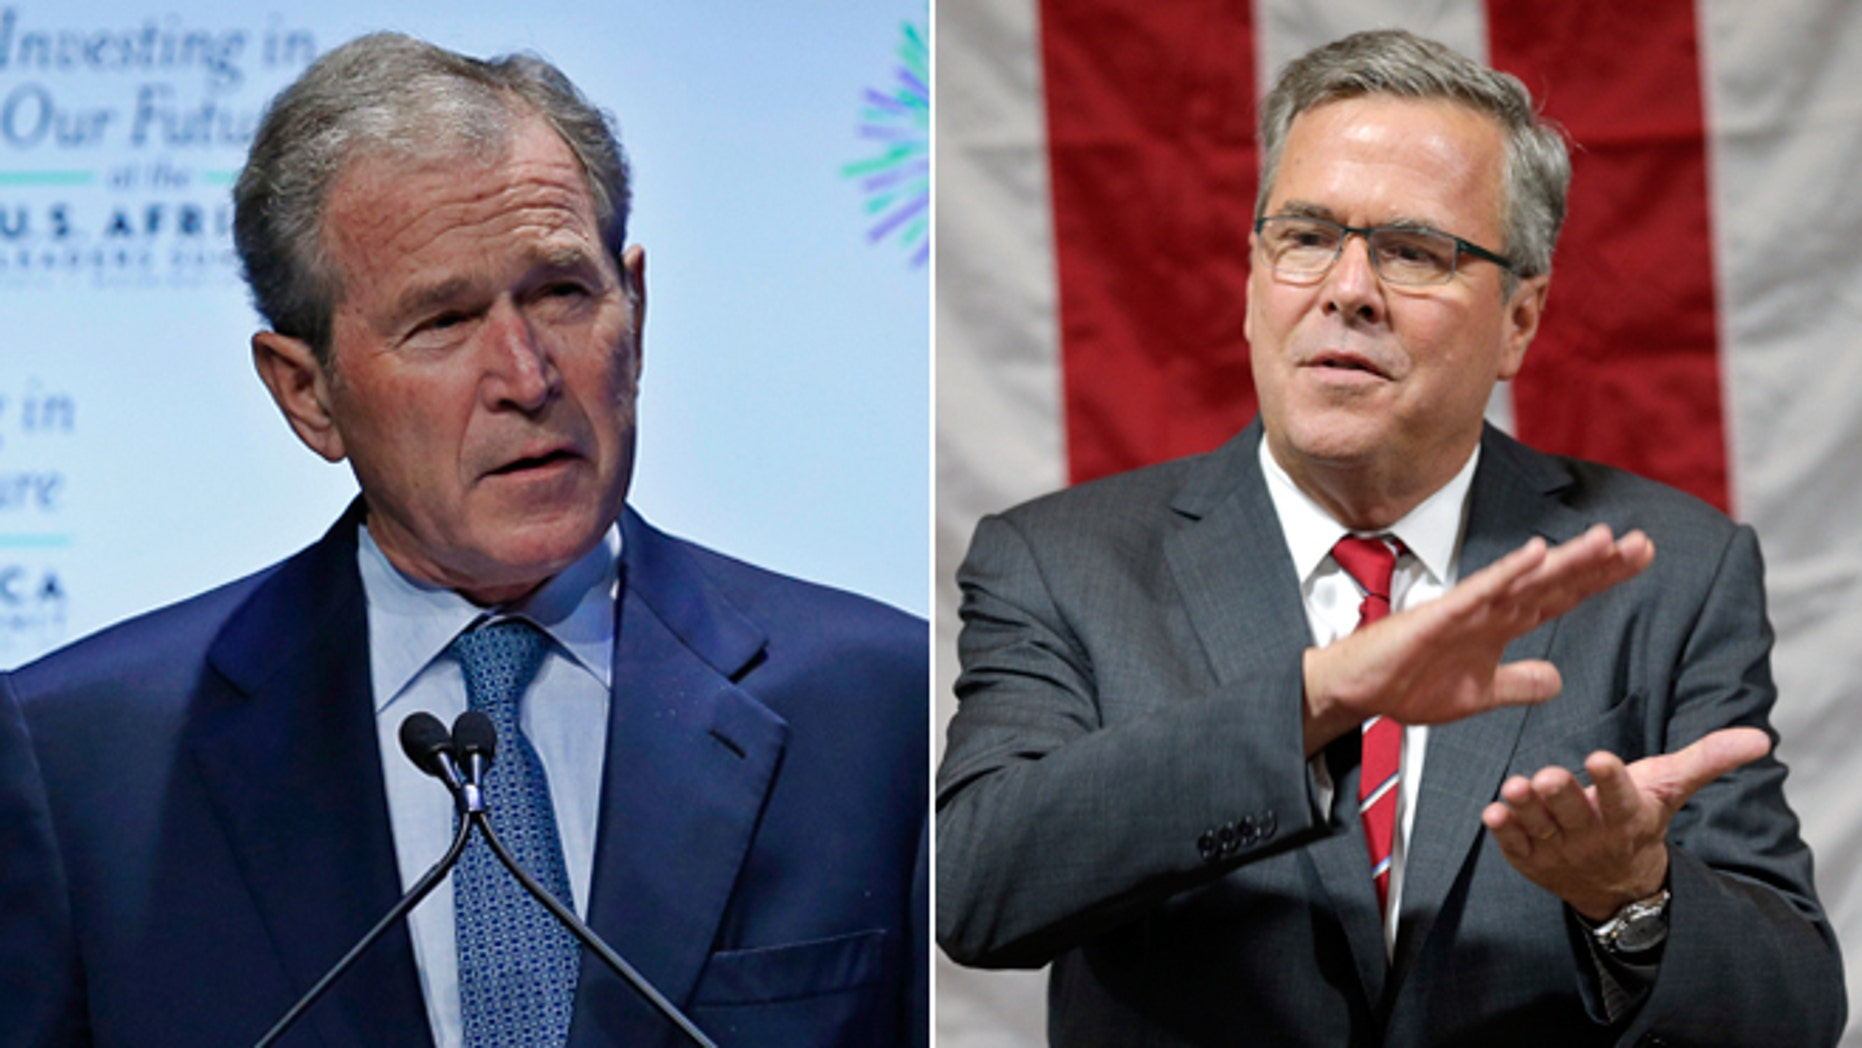 "In this Aug. 6, 2014 photo, former U.S. President George W. Bush speaks at the ""Investing in Our Future"" forum at the US-Africa Leaders Summit in Washington and former Florida Gov. Jeb Bush speaks during an event in Greensboro, N.C. on Wednesday, Sept. 24, 2014. (AP Photo/Chuck Burton)"